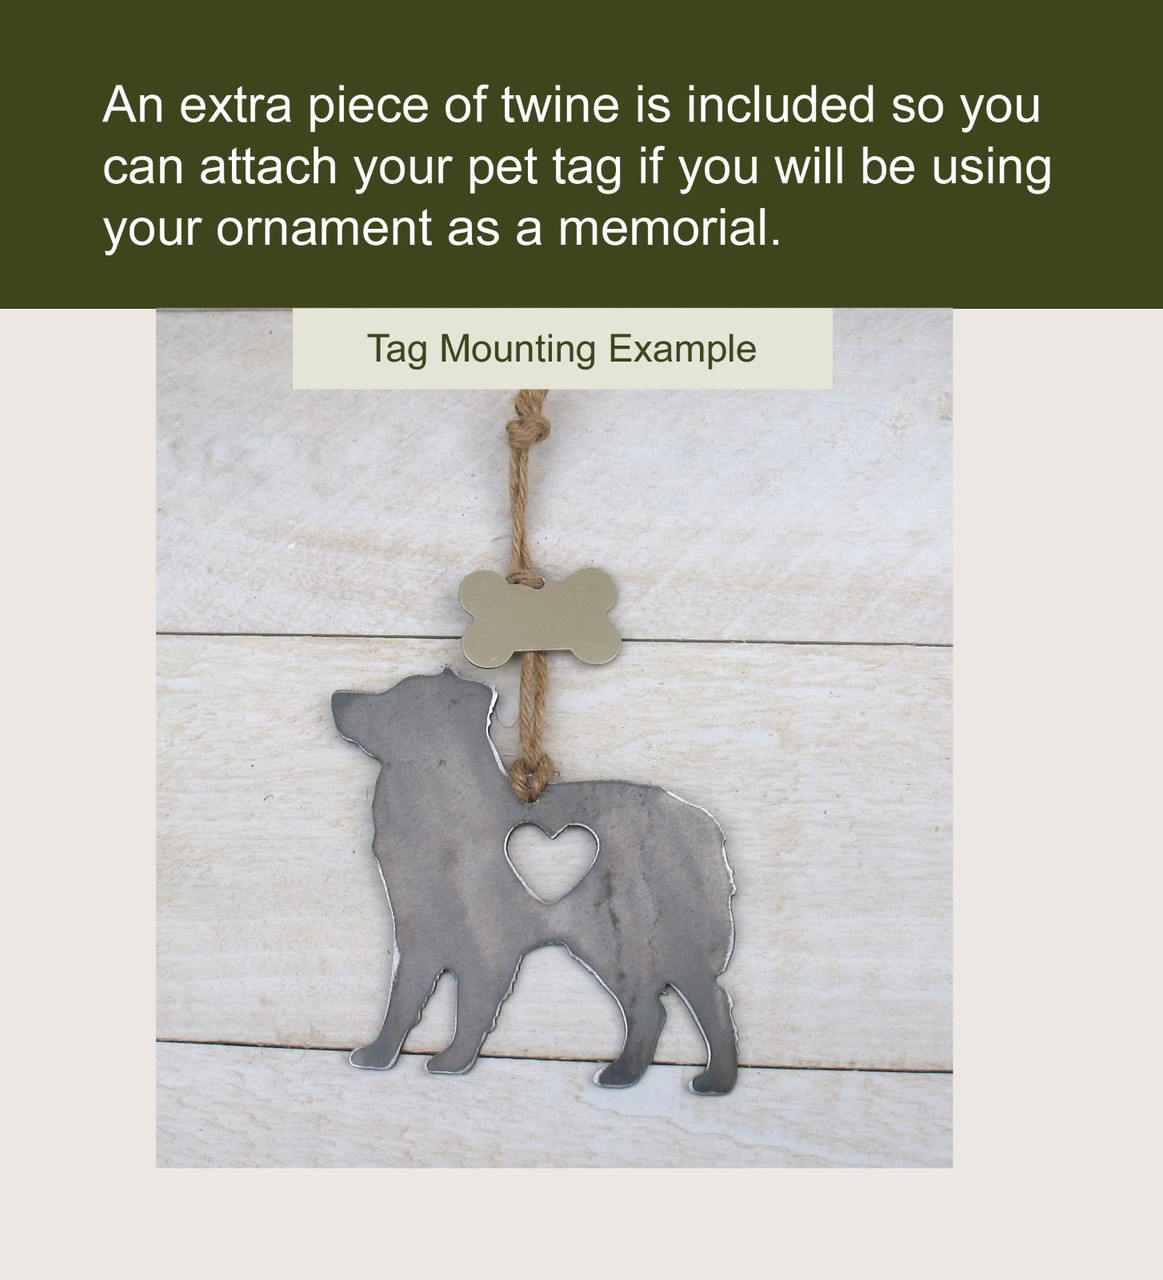 Weimaraner 3 Pet Loss Gift Ornament Angel - Pet Memorial - Dog Sympathy Remembrance Gift - Metal Dog Christmas Ornament